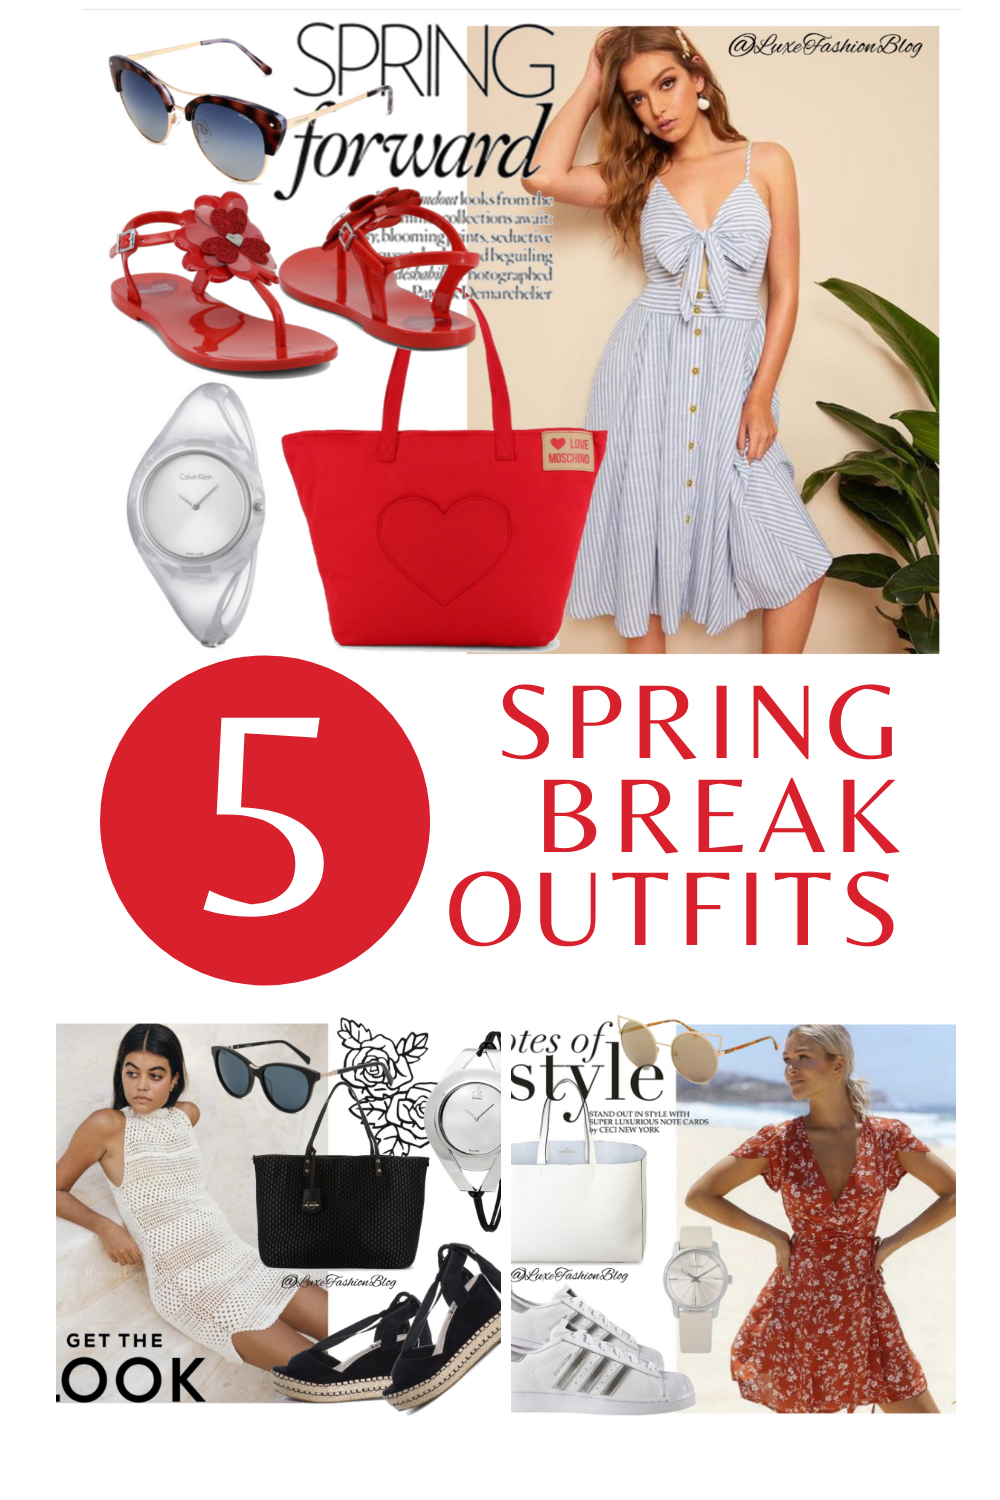 5 Spring Break Outfits & Accessories You Totally Need | Spring Break Outfit Ideas | Red Bag